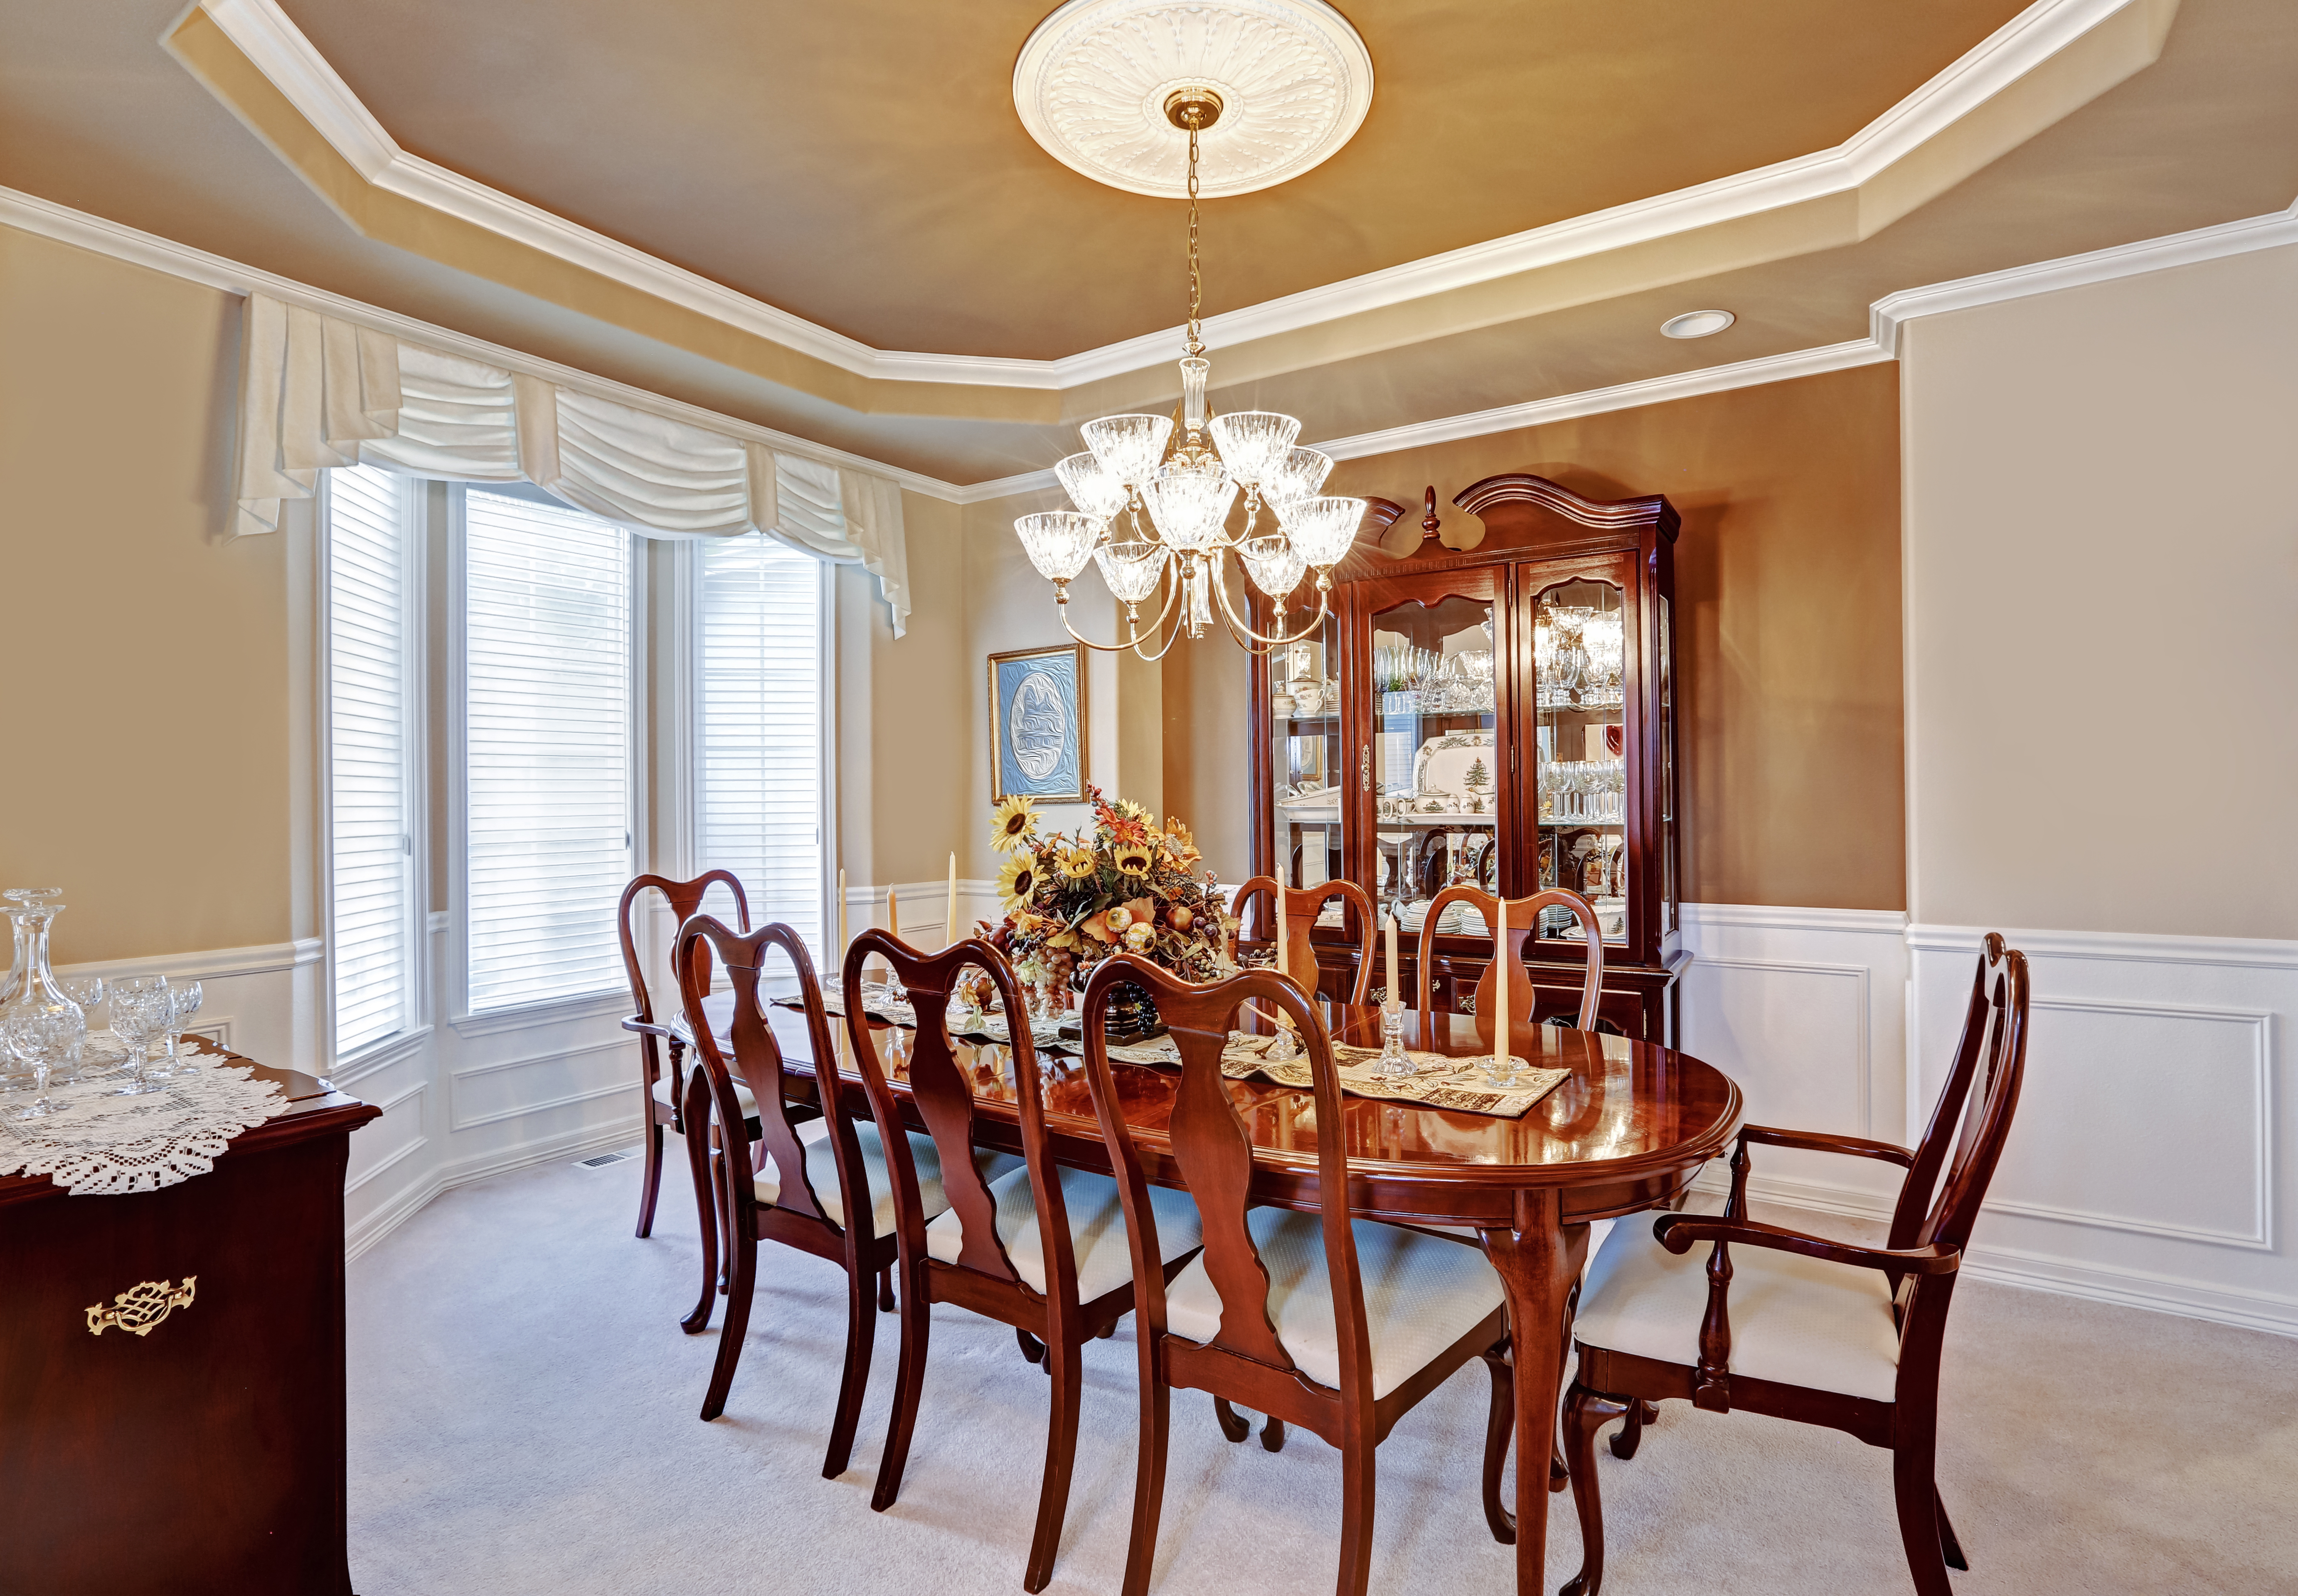 Beautiful dining room interior in luxury house. Wooden dining table set blend perfectly with light brown walls and white trim